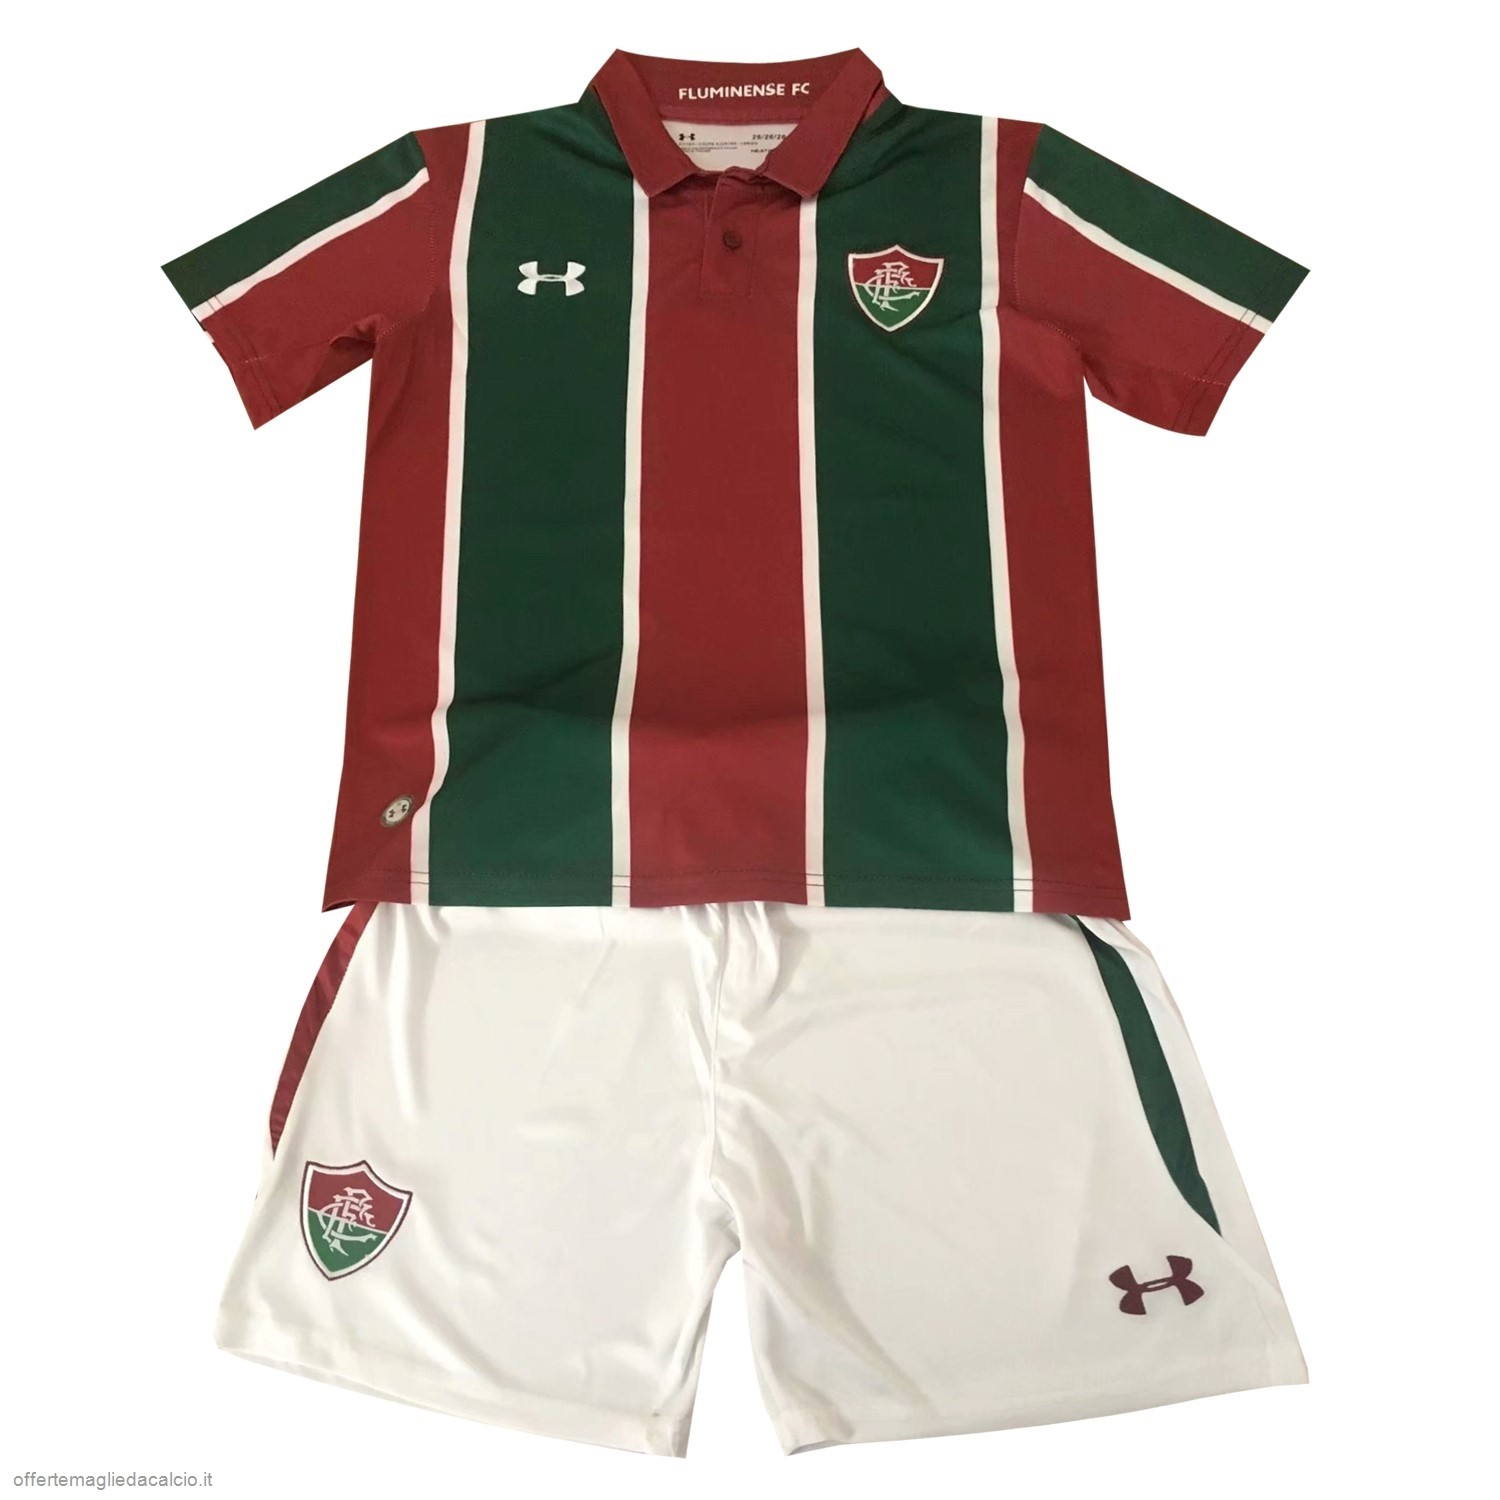 Calcio Shop Online Under Armour Home Set Completo Bambino Fluminense 2019 2020 Rosso Verde